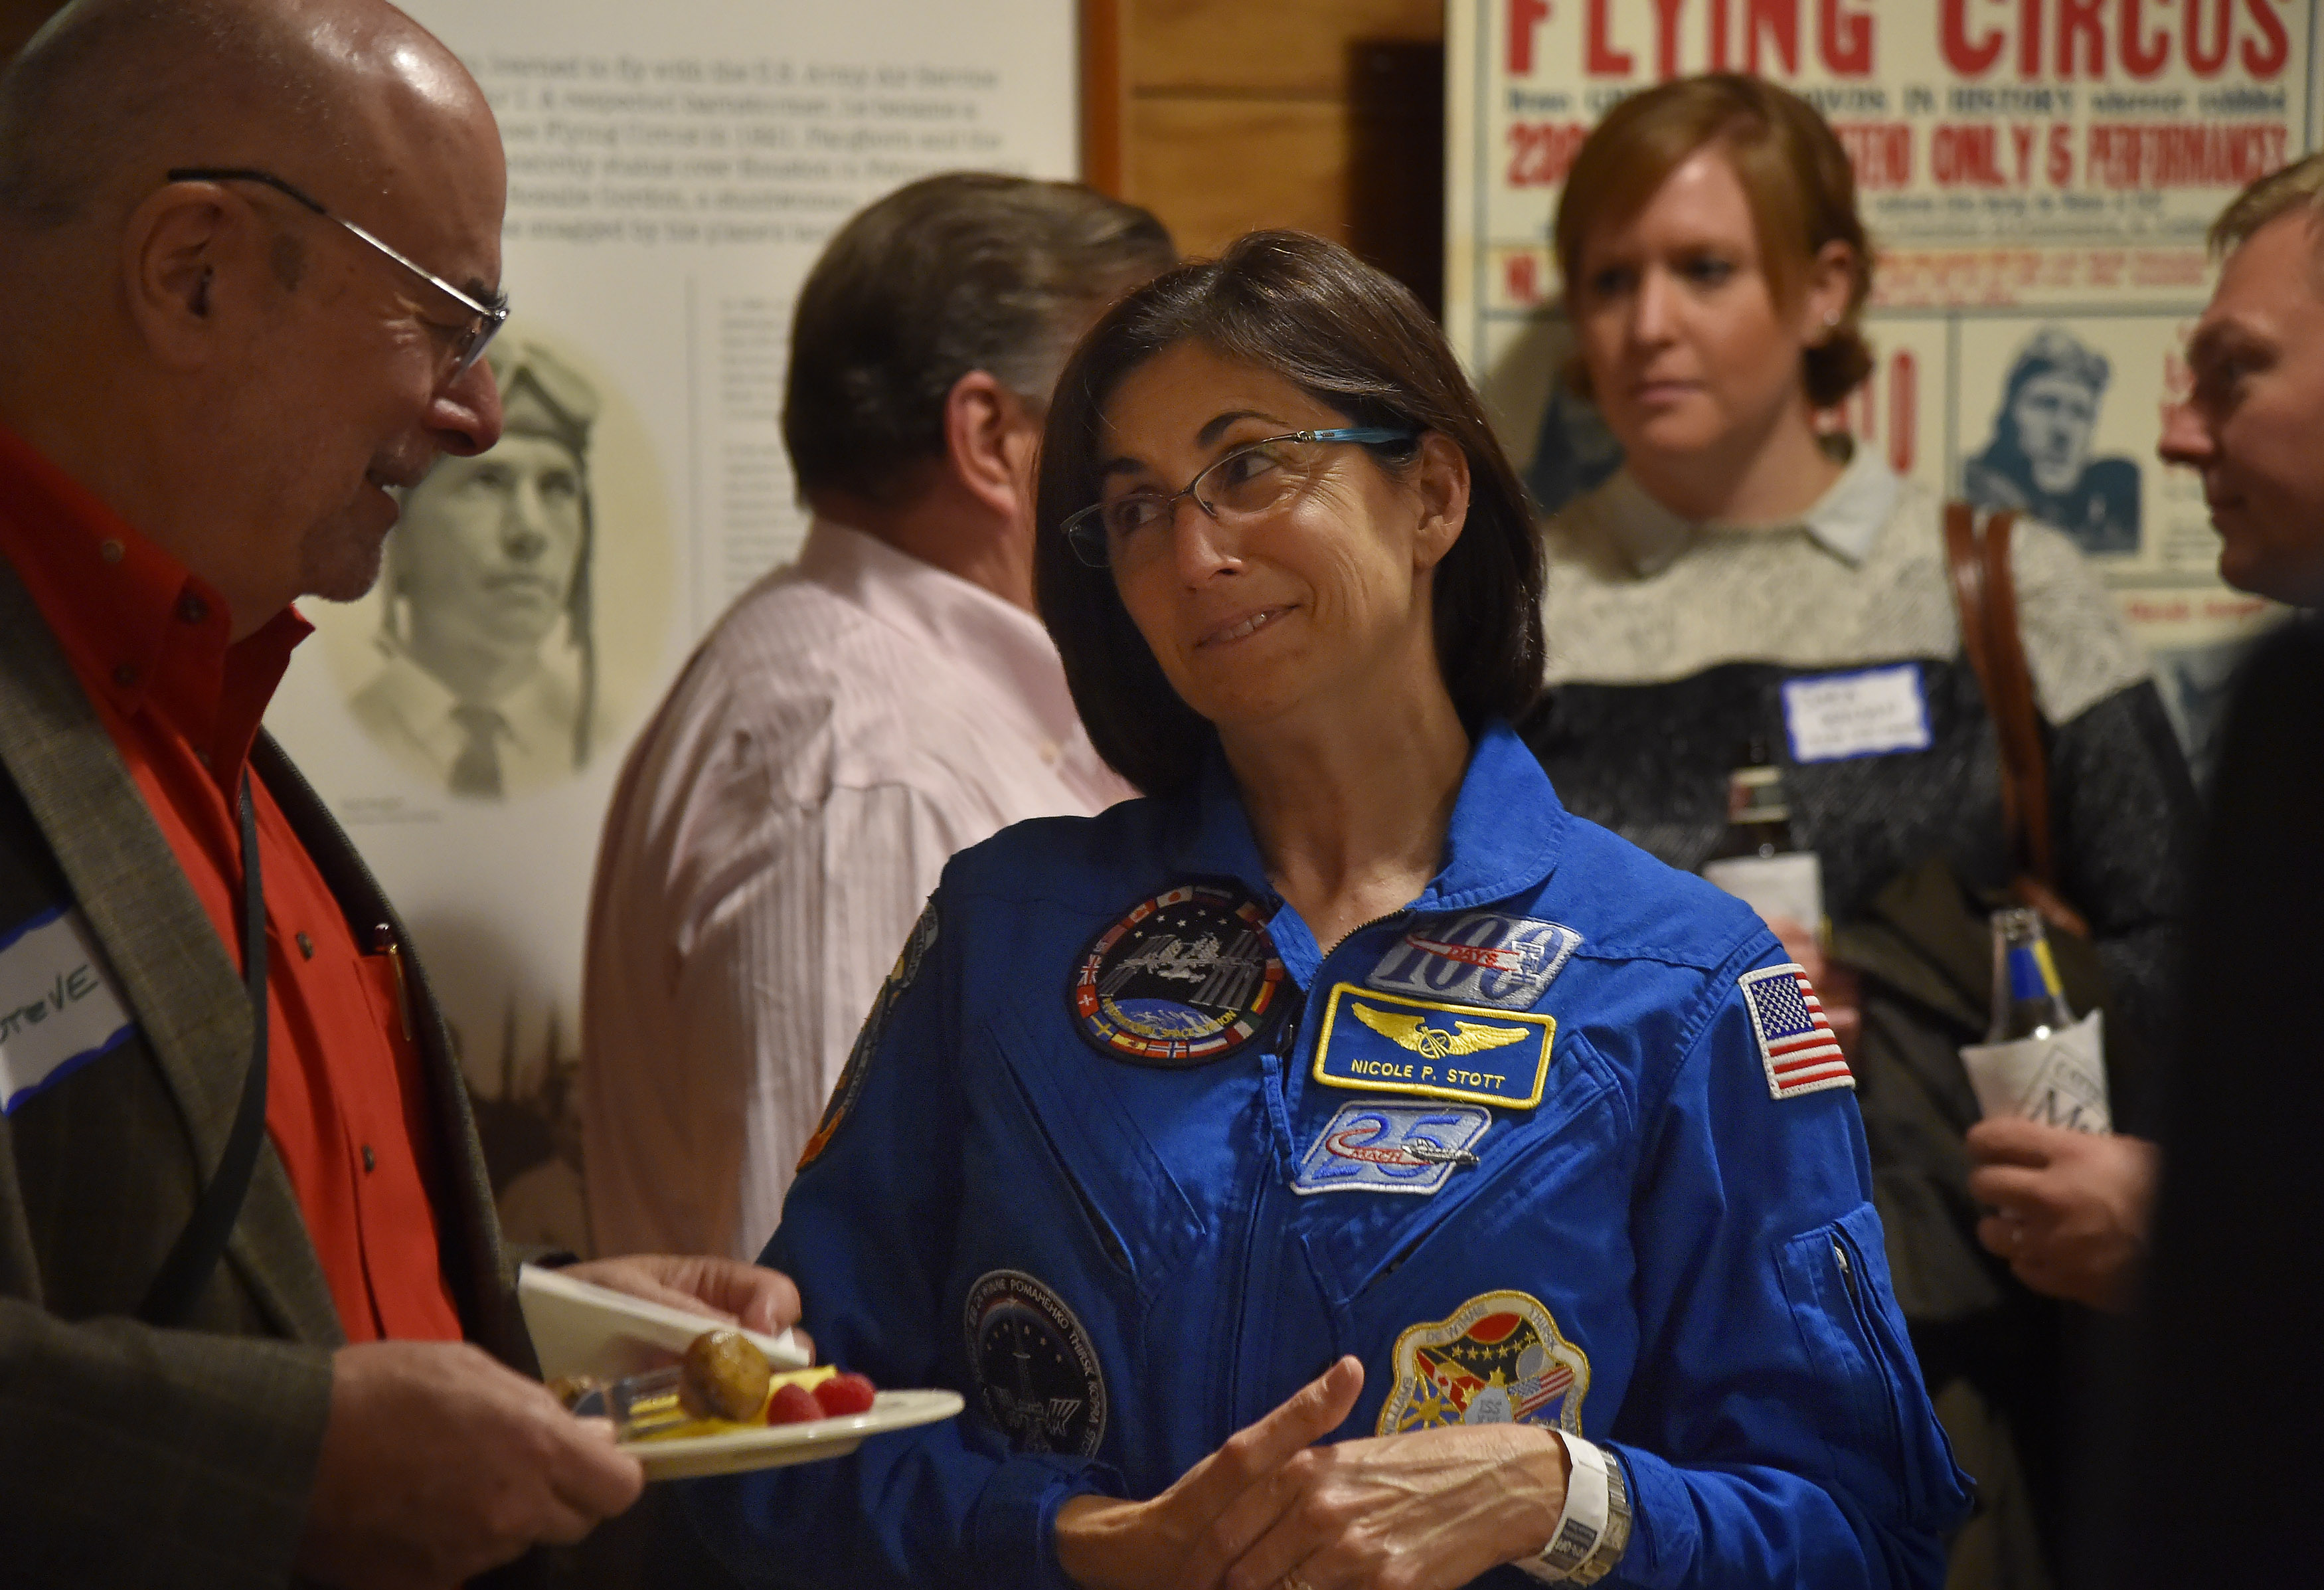 Retired NASA astronaut Nicole Stott chats with AOPA High School Symposium participants at a welcome reception in Seattle, Nov. 6. Photo by David Tulis.